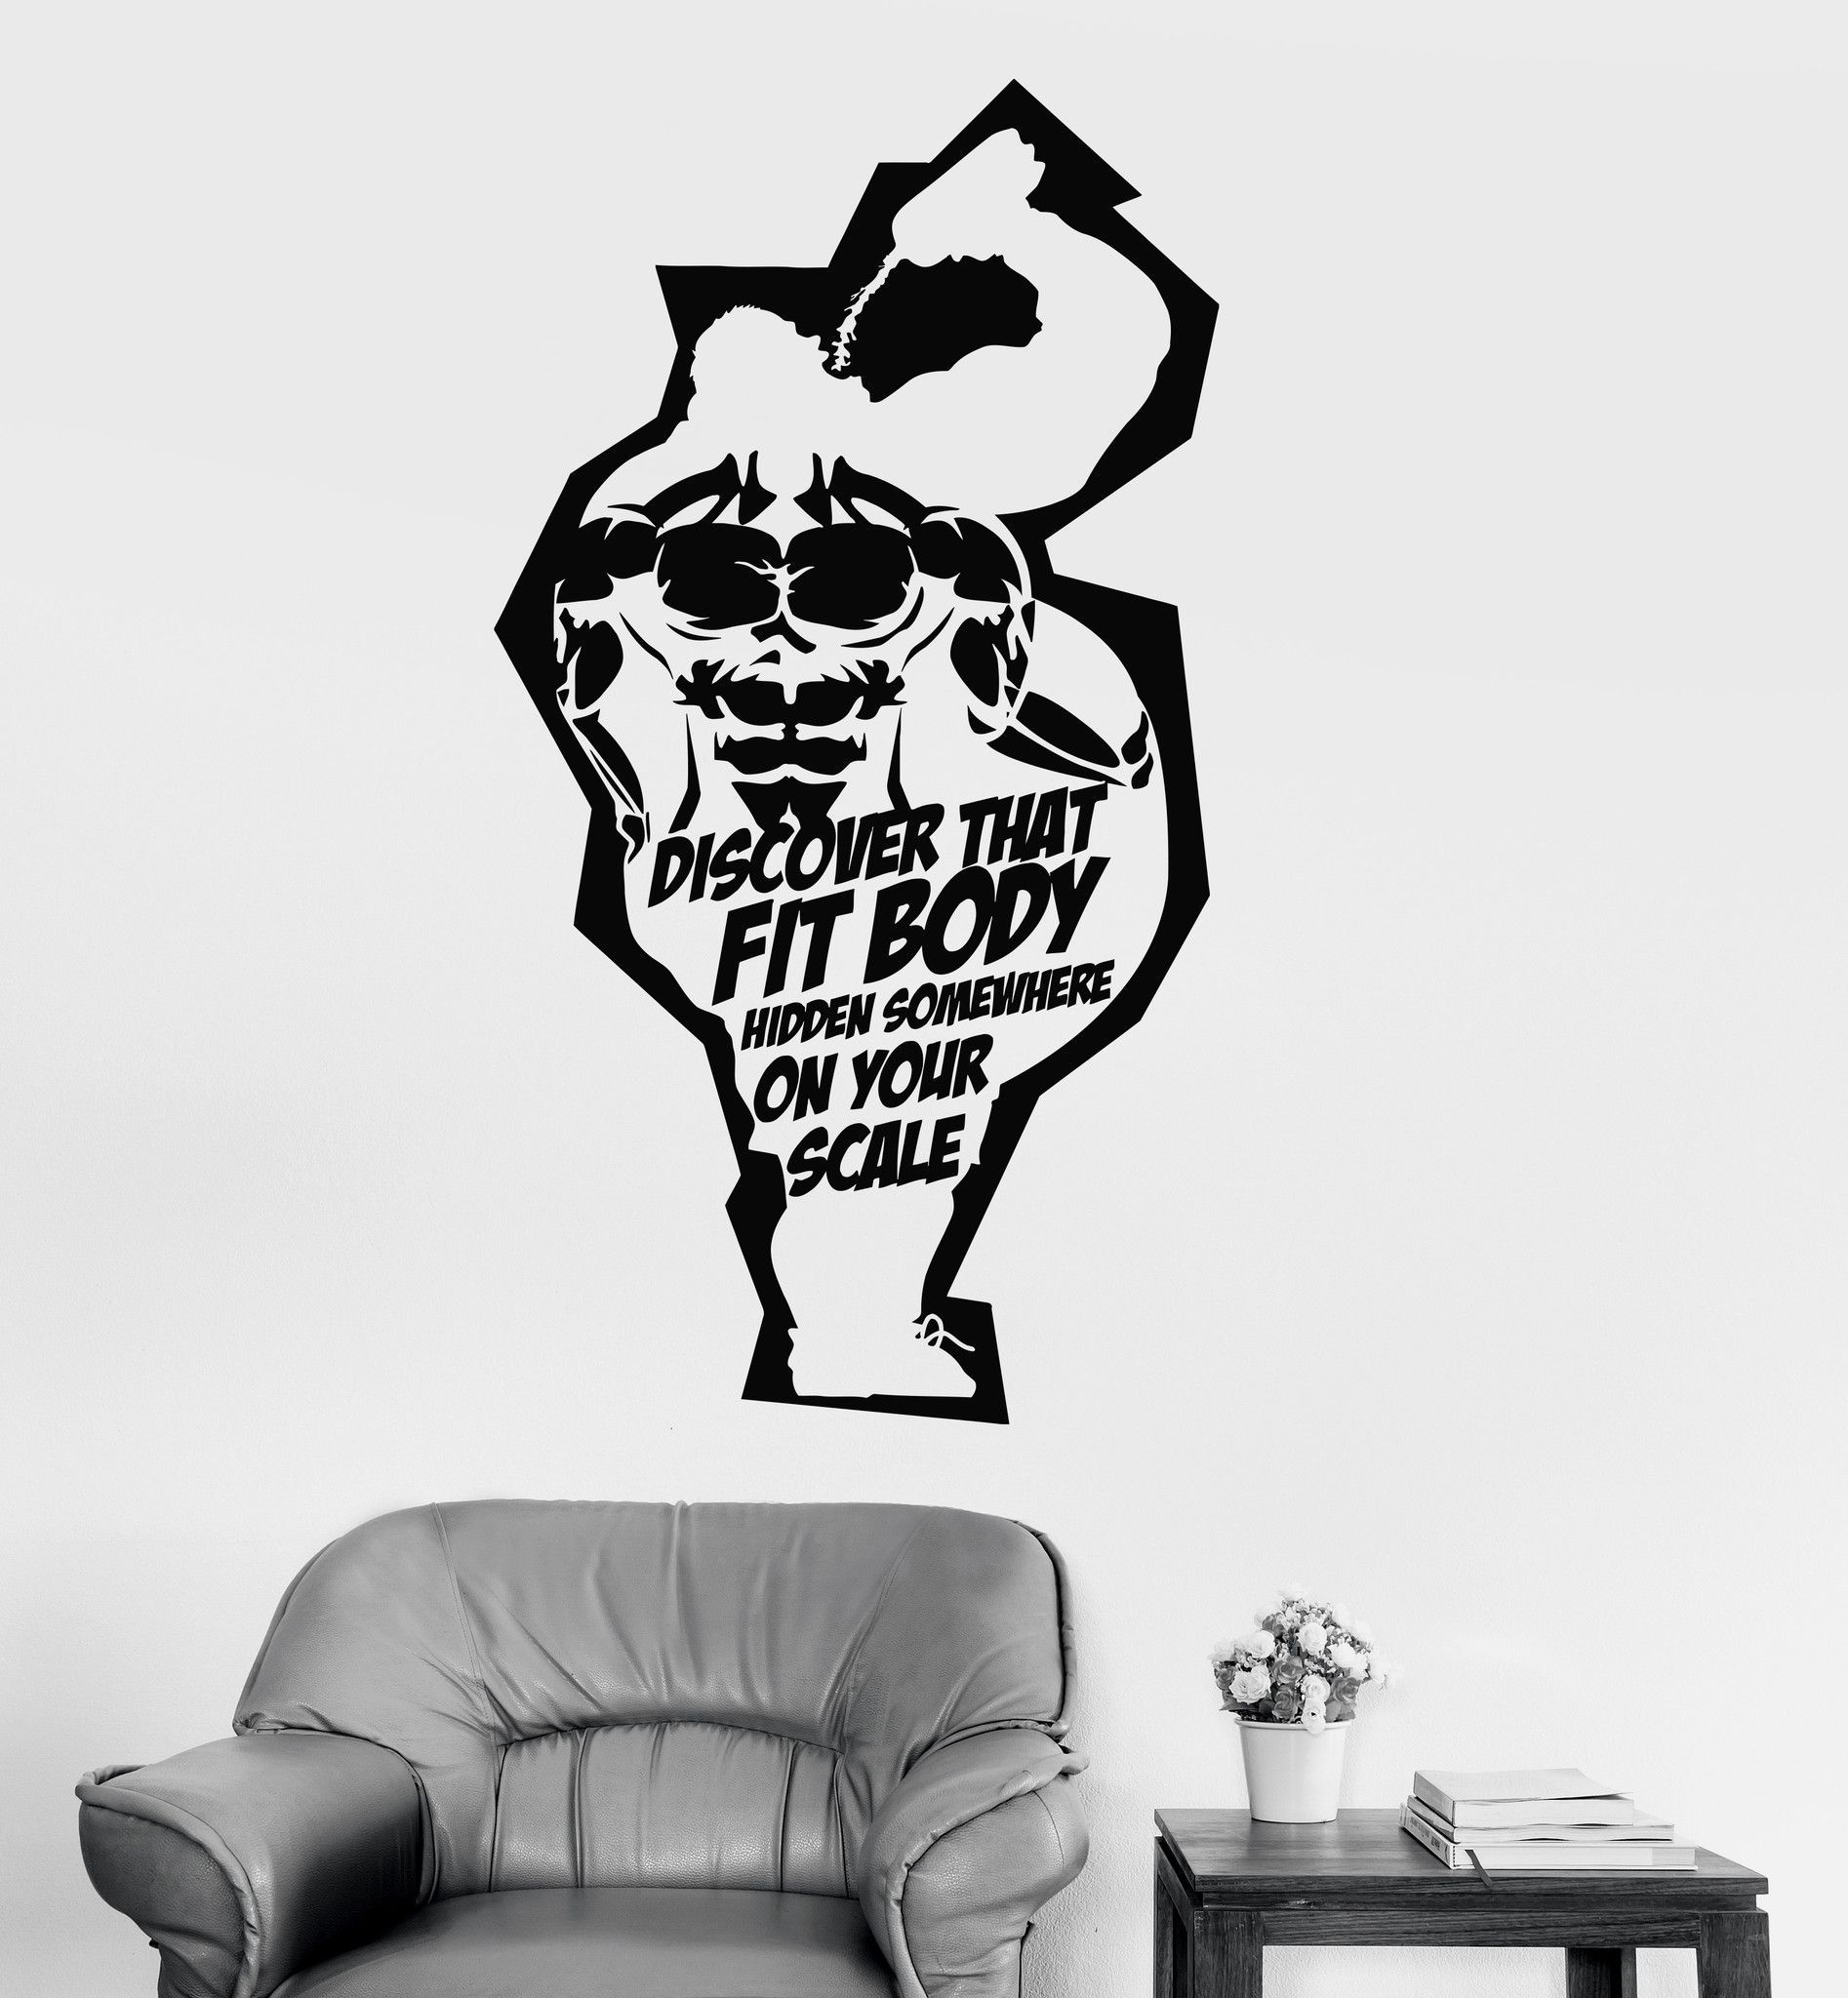 vinyl wall decal fitness club motivation quote muscle gym stickers vinyl wall decal fitness club motivation quote muscle gym stickers ig3944